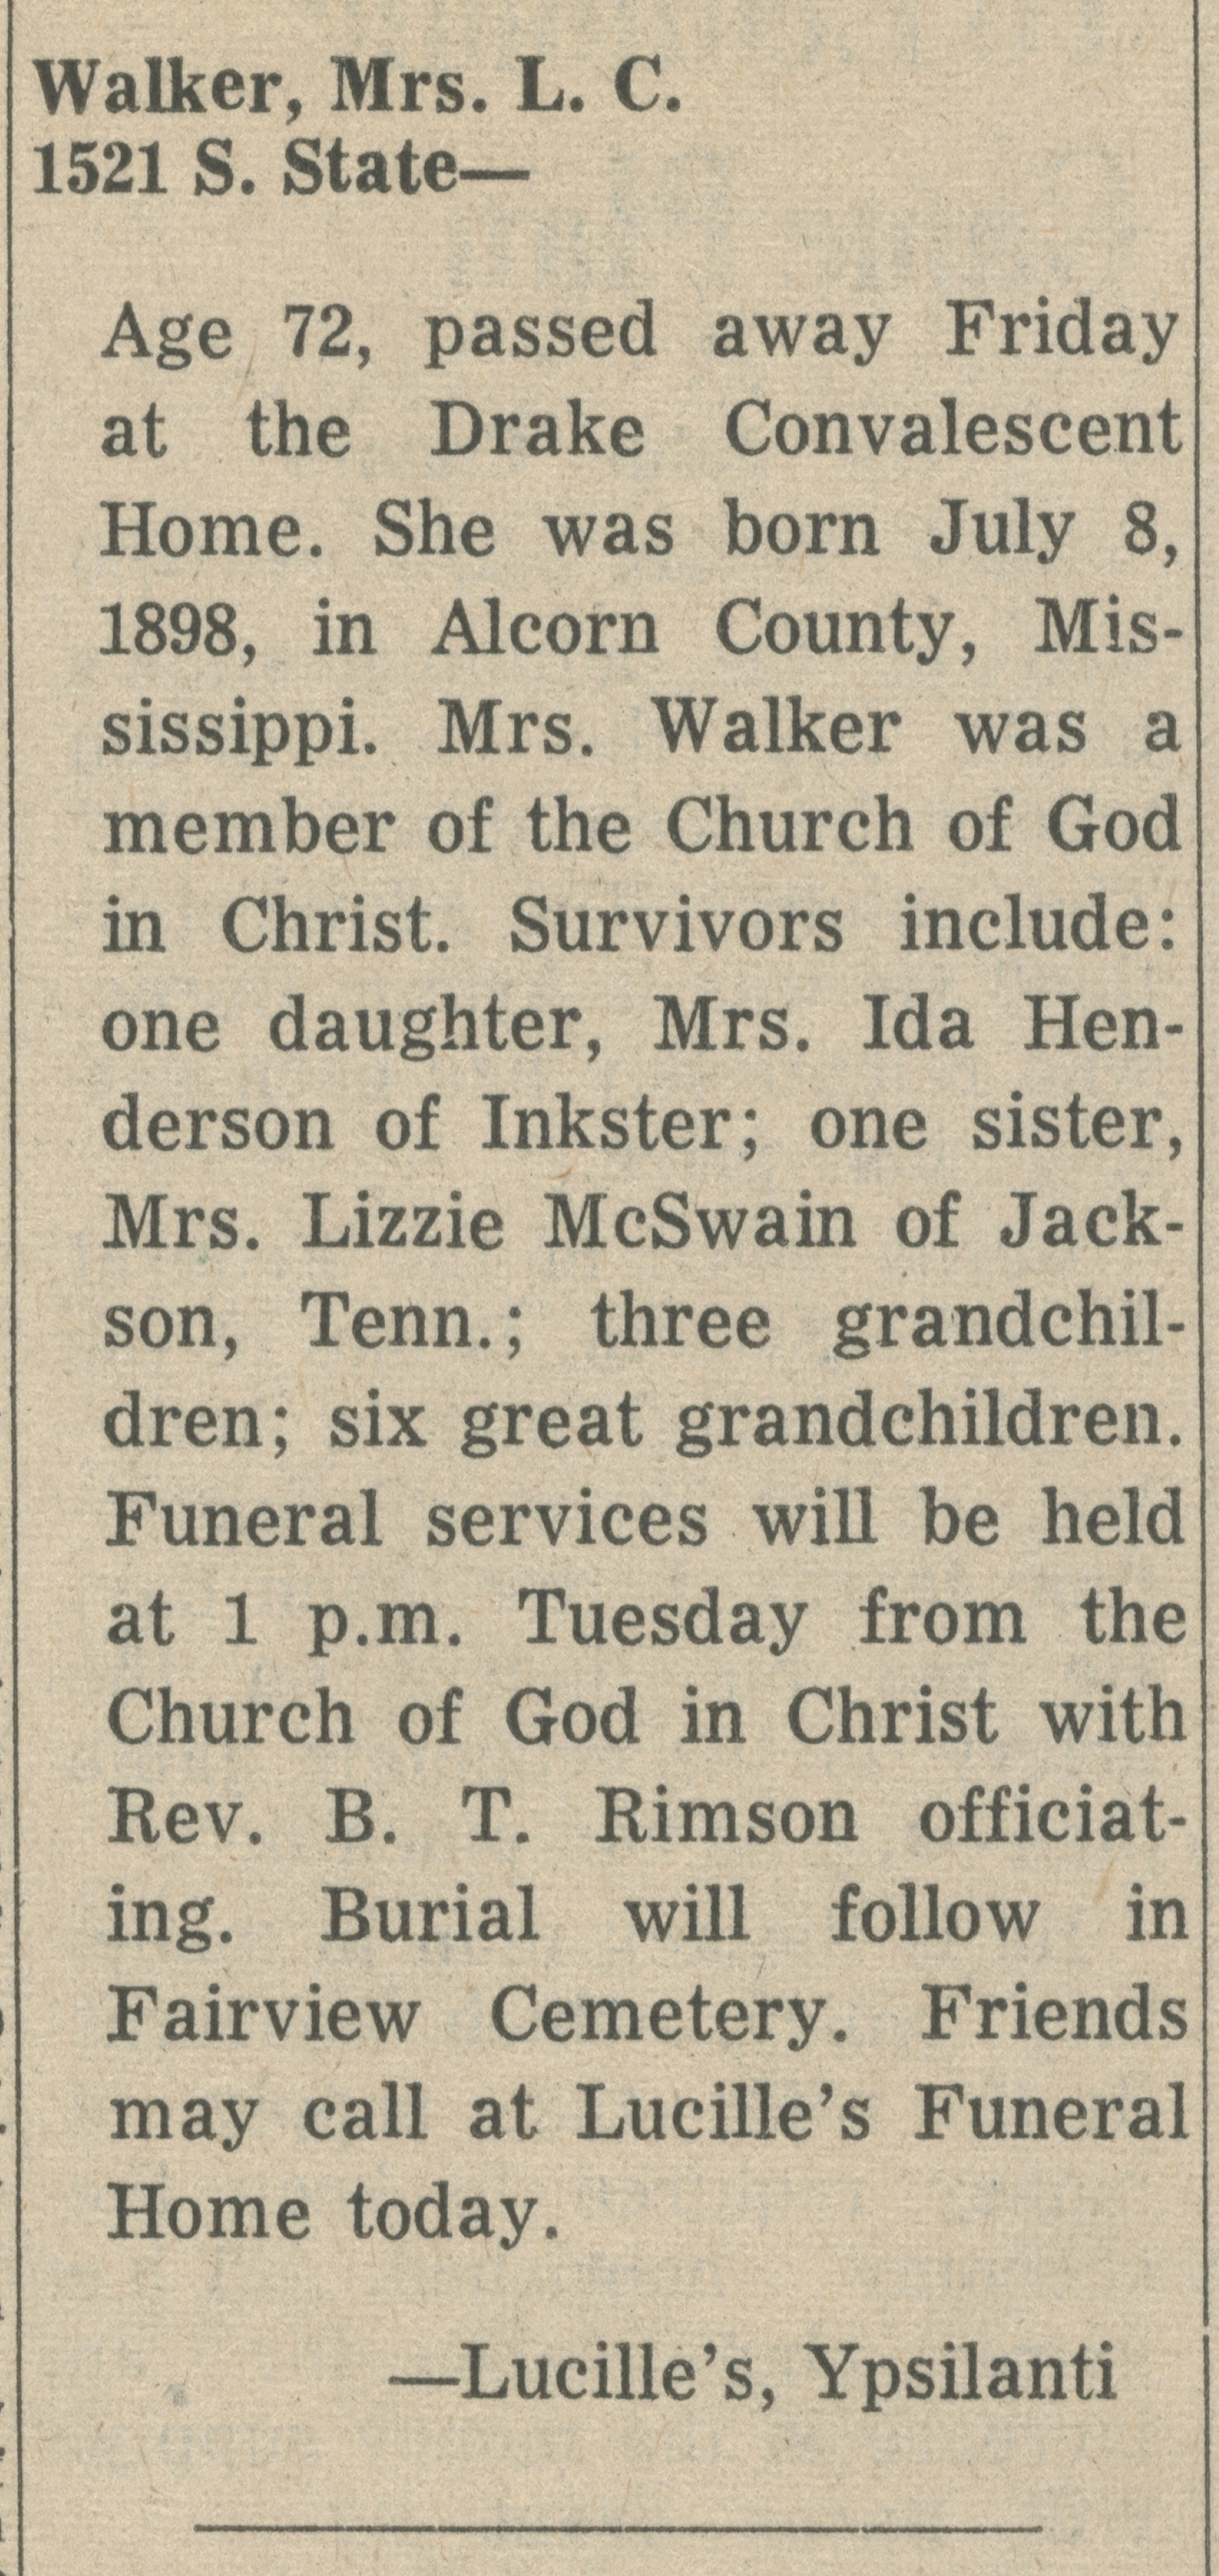 Walker, Mrs. L. C. image